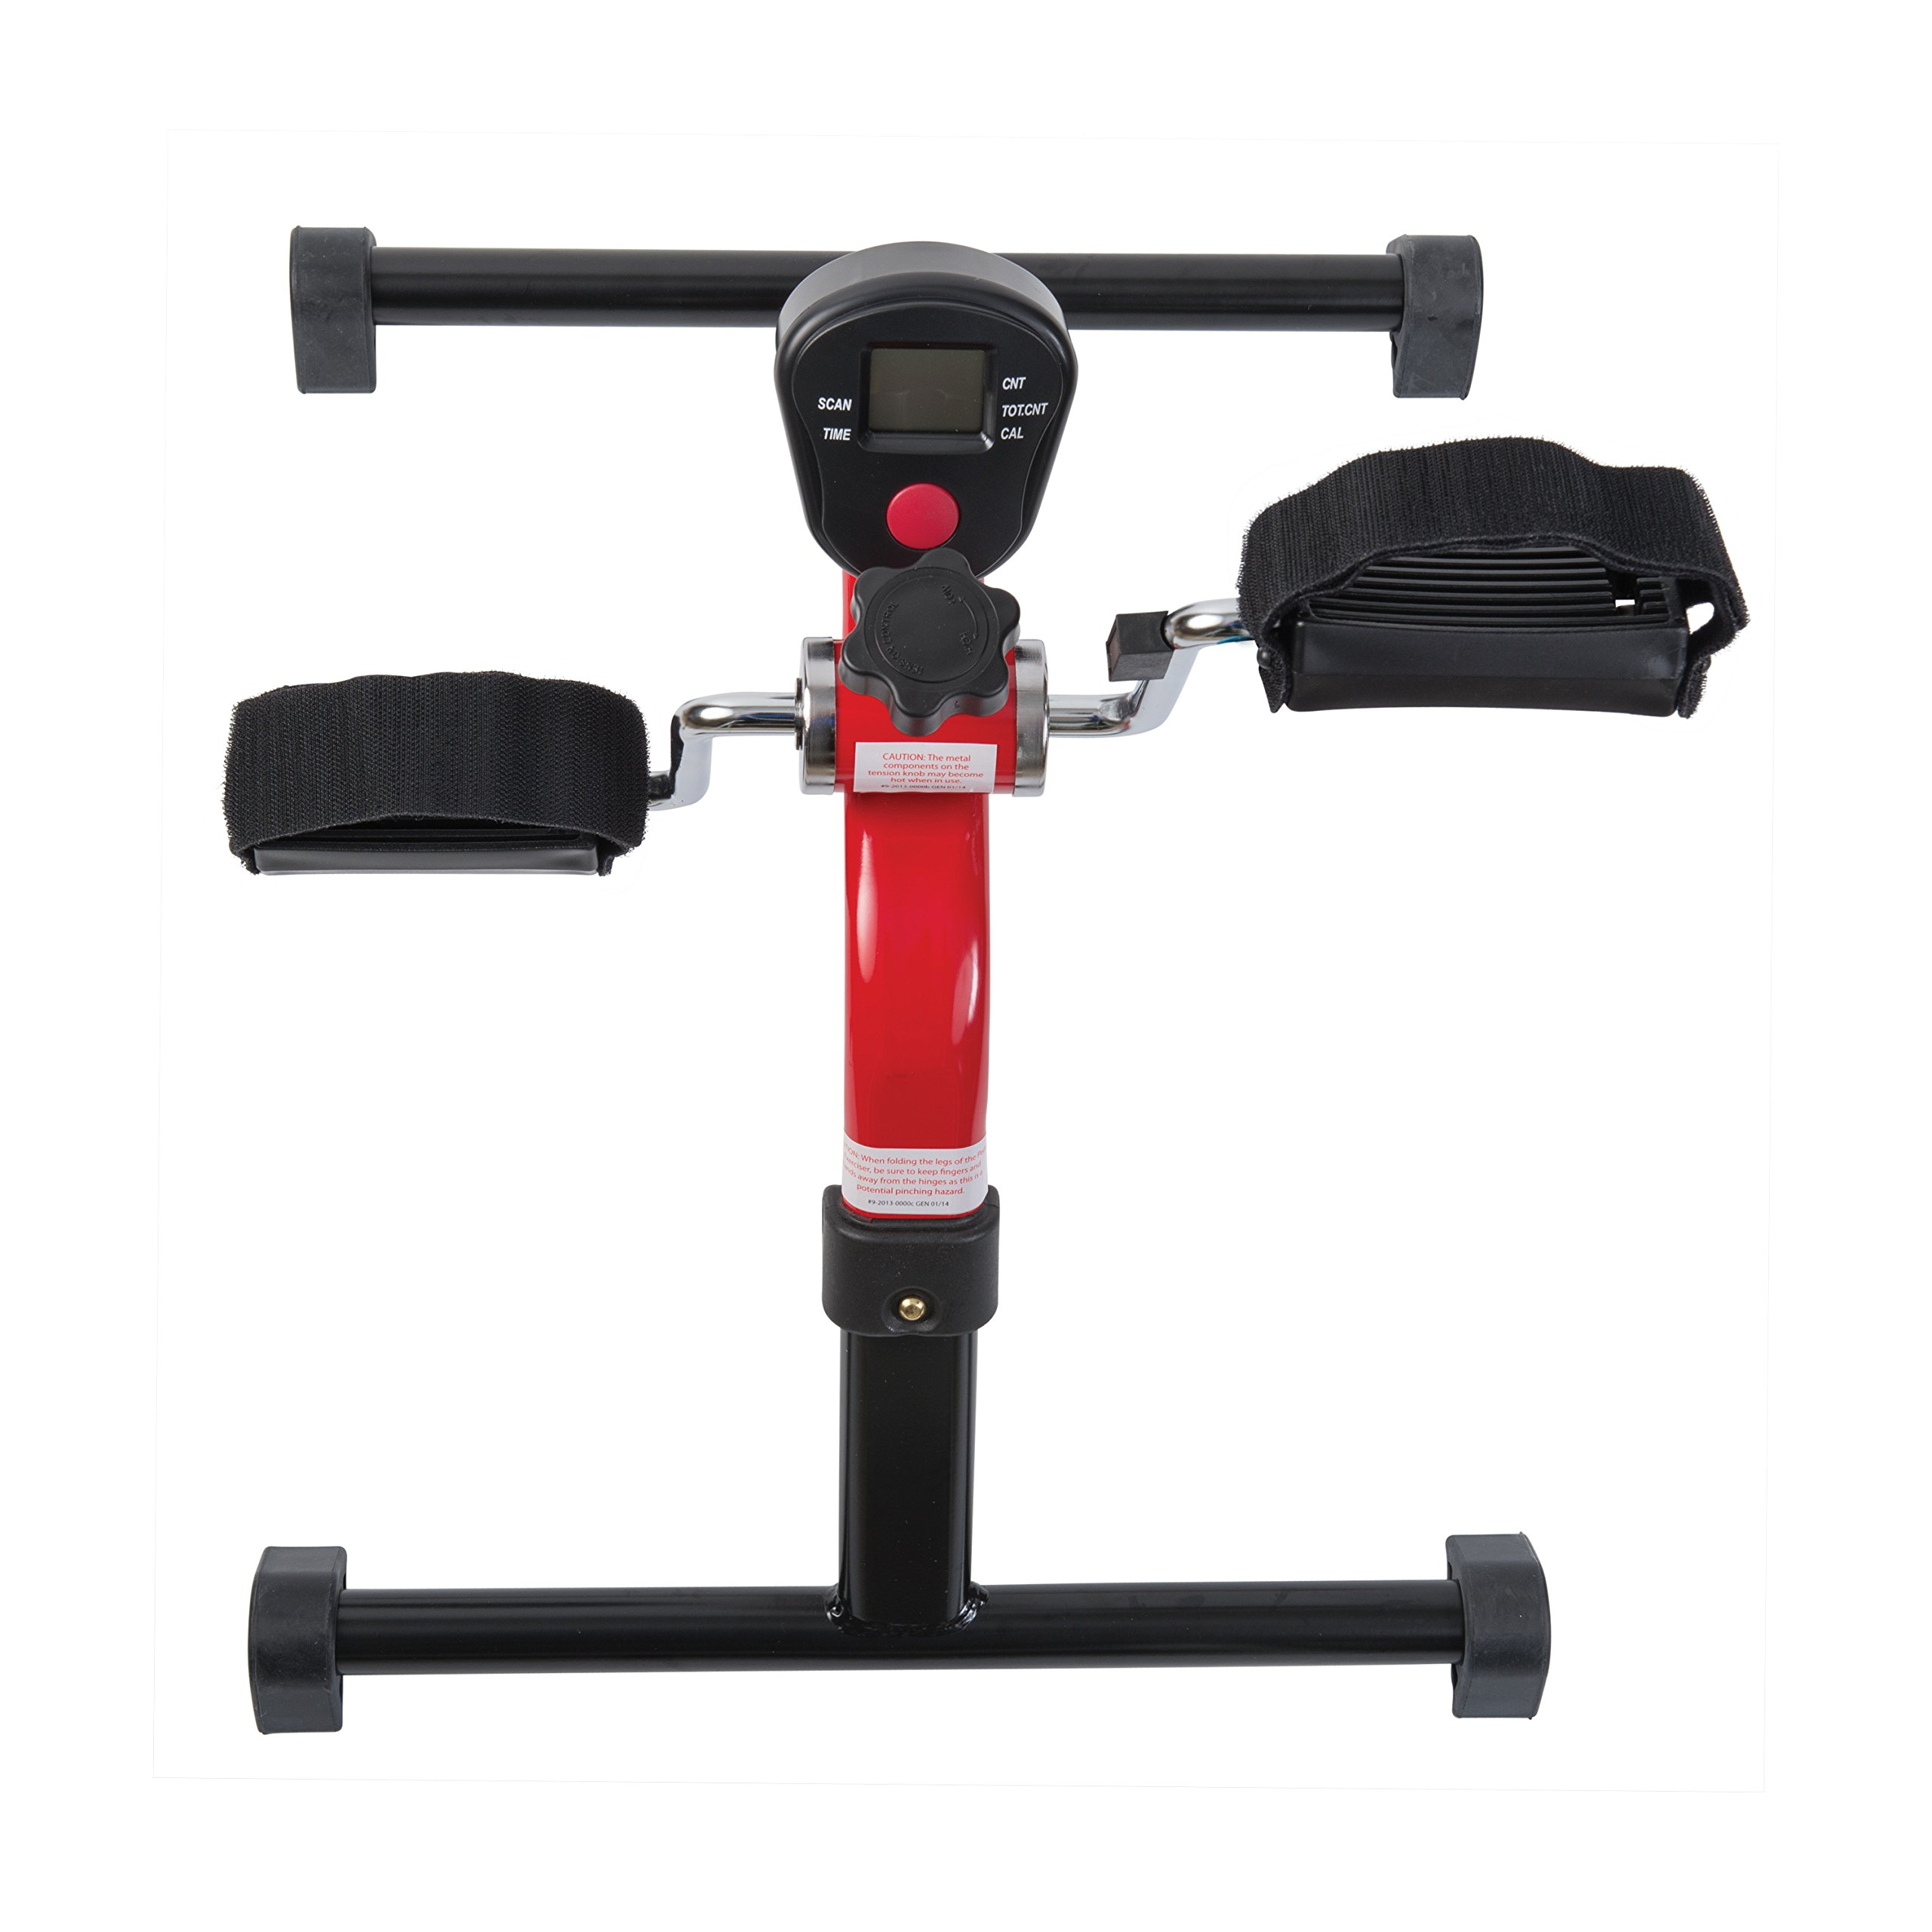 HealthSmart Lightweight Pedal Exerciser with Folding Legs and Digital Monitor Display for Exercising Arms and Legs, Red